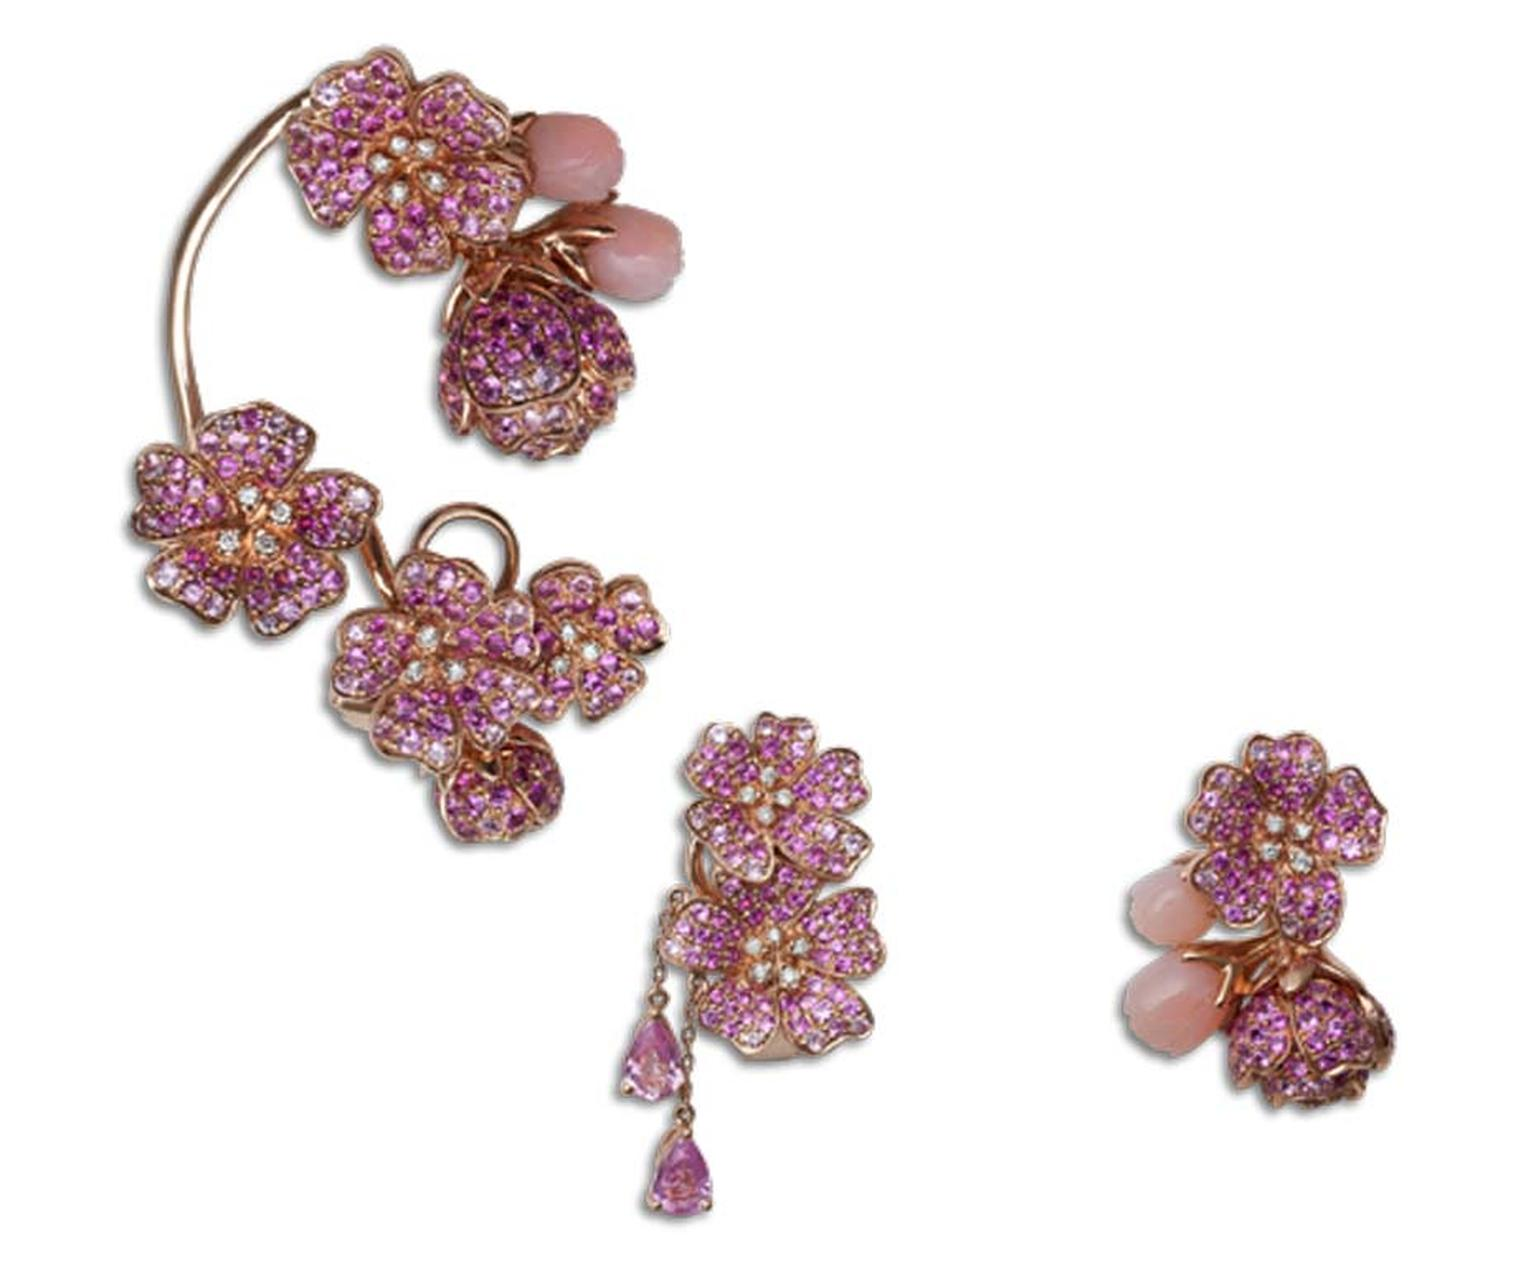 Morphée's Cherry Tree Blossom earrings are set with sapphires, diamonds and pink opals